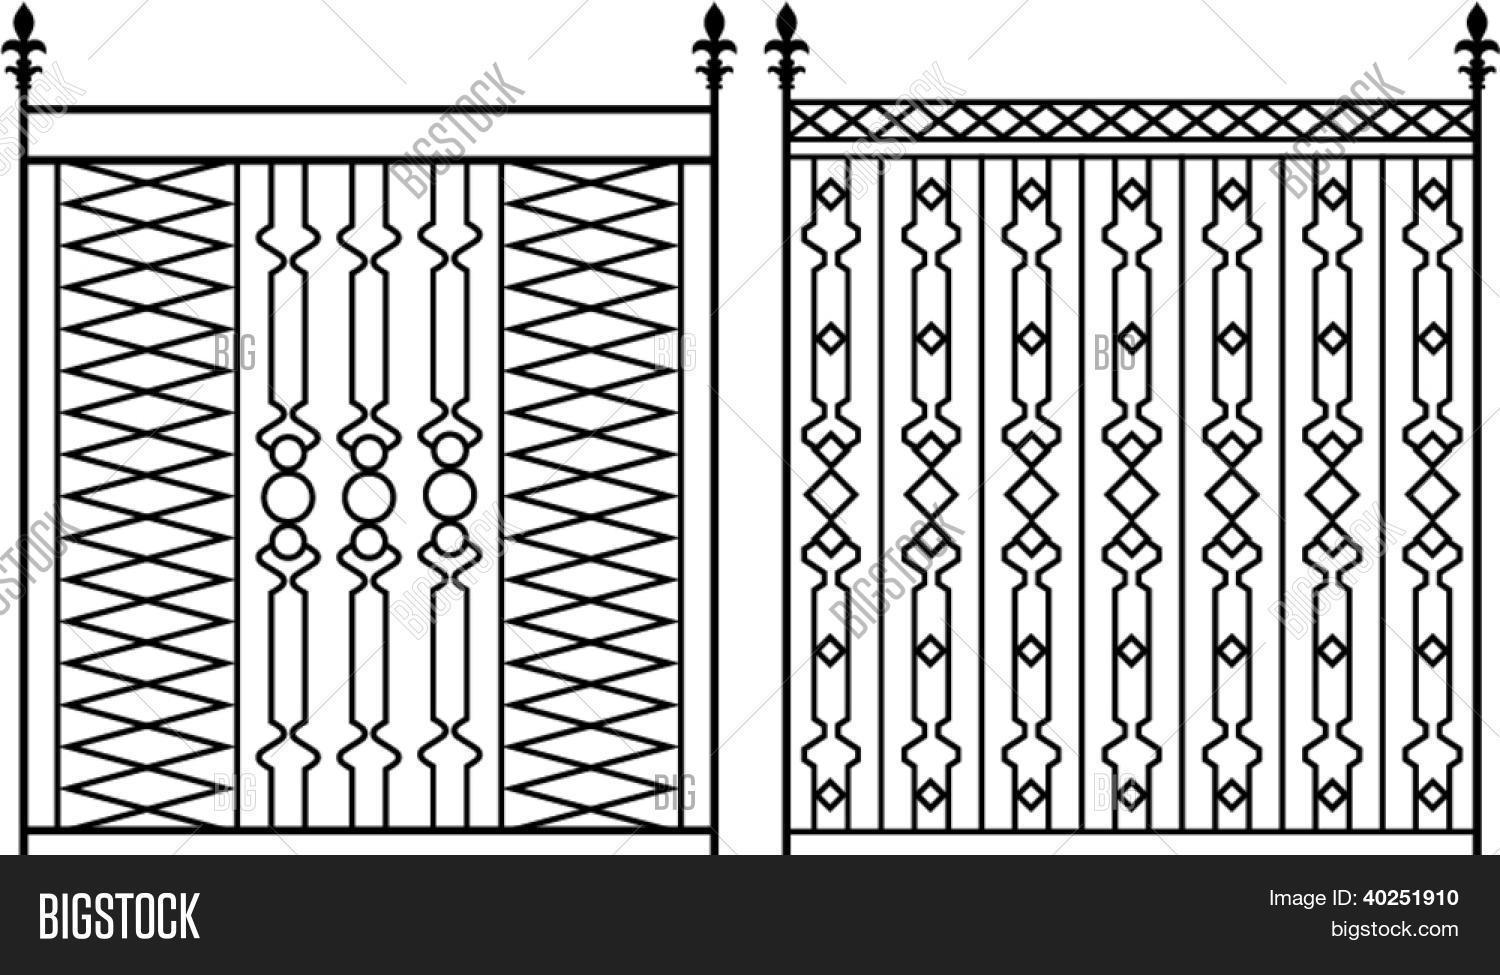 Wrought Iron Gate, Vector & Photo (Free Trial) | Bigstock